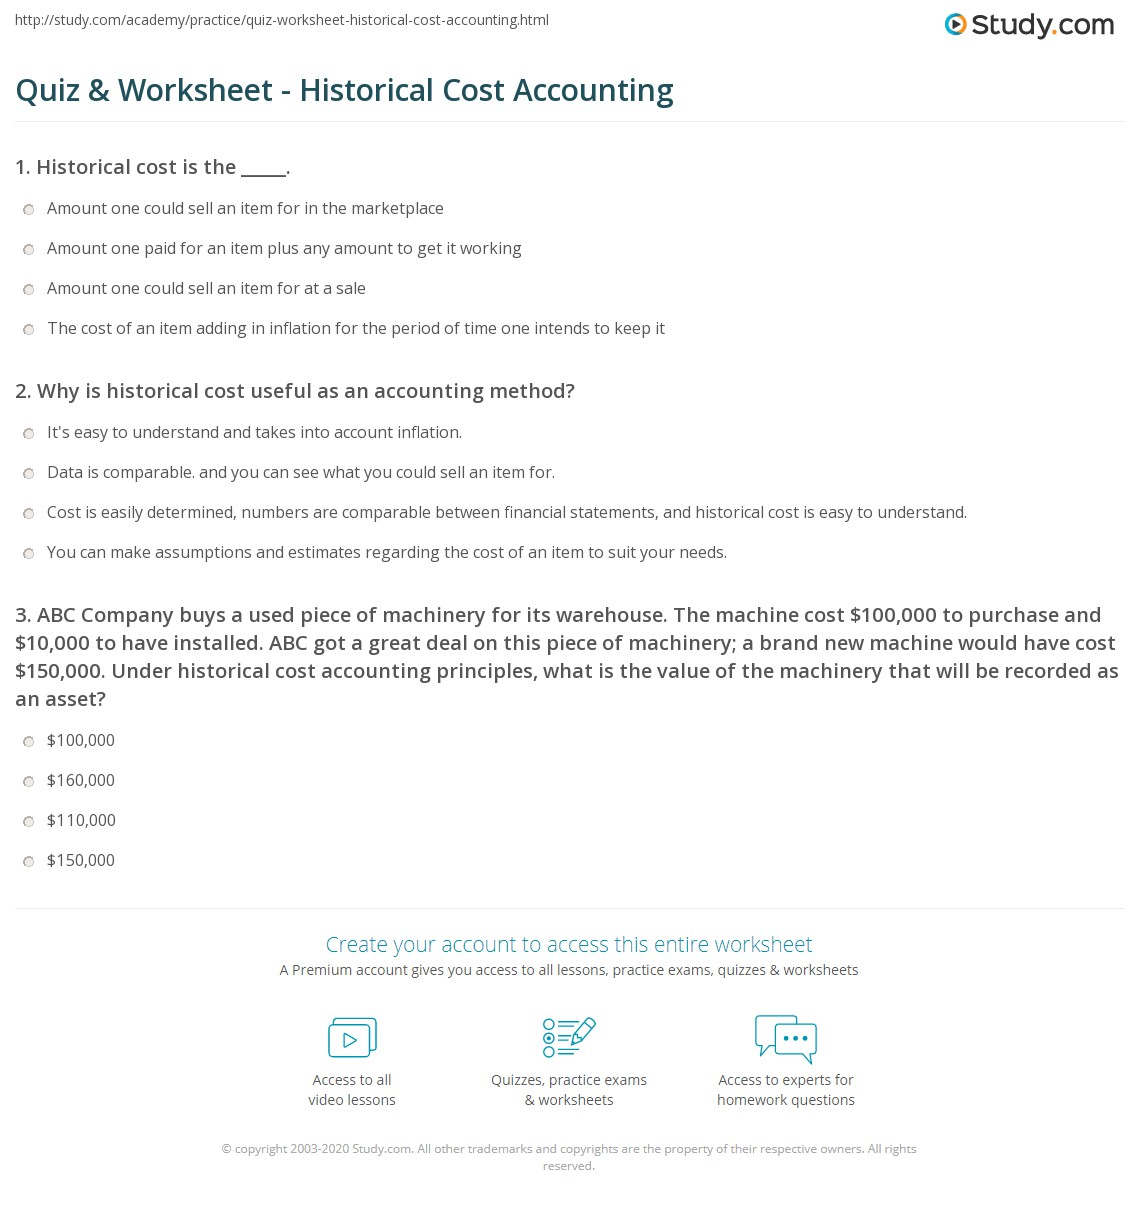 advantages of historical cost accounting